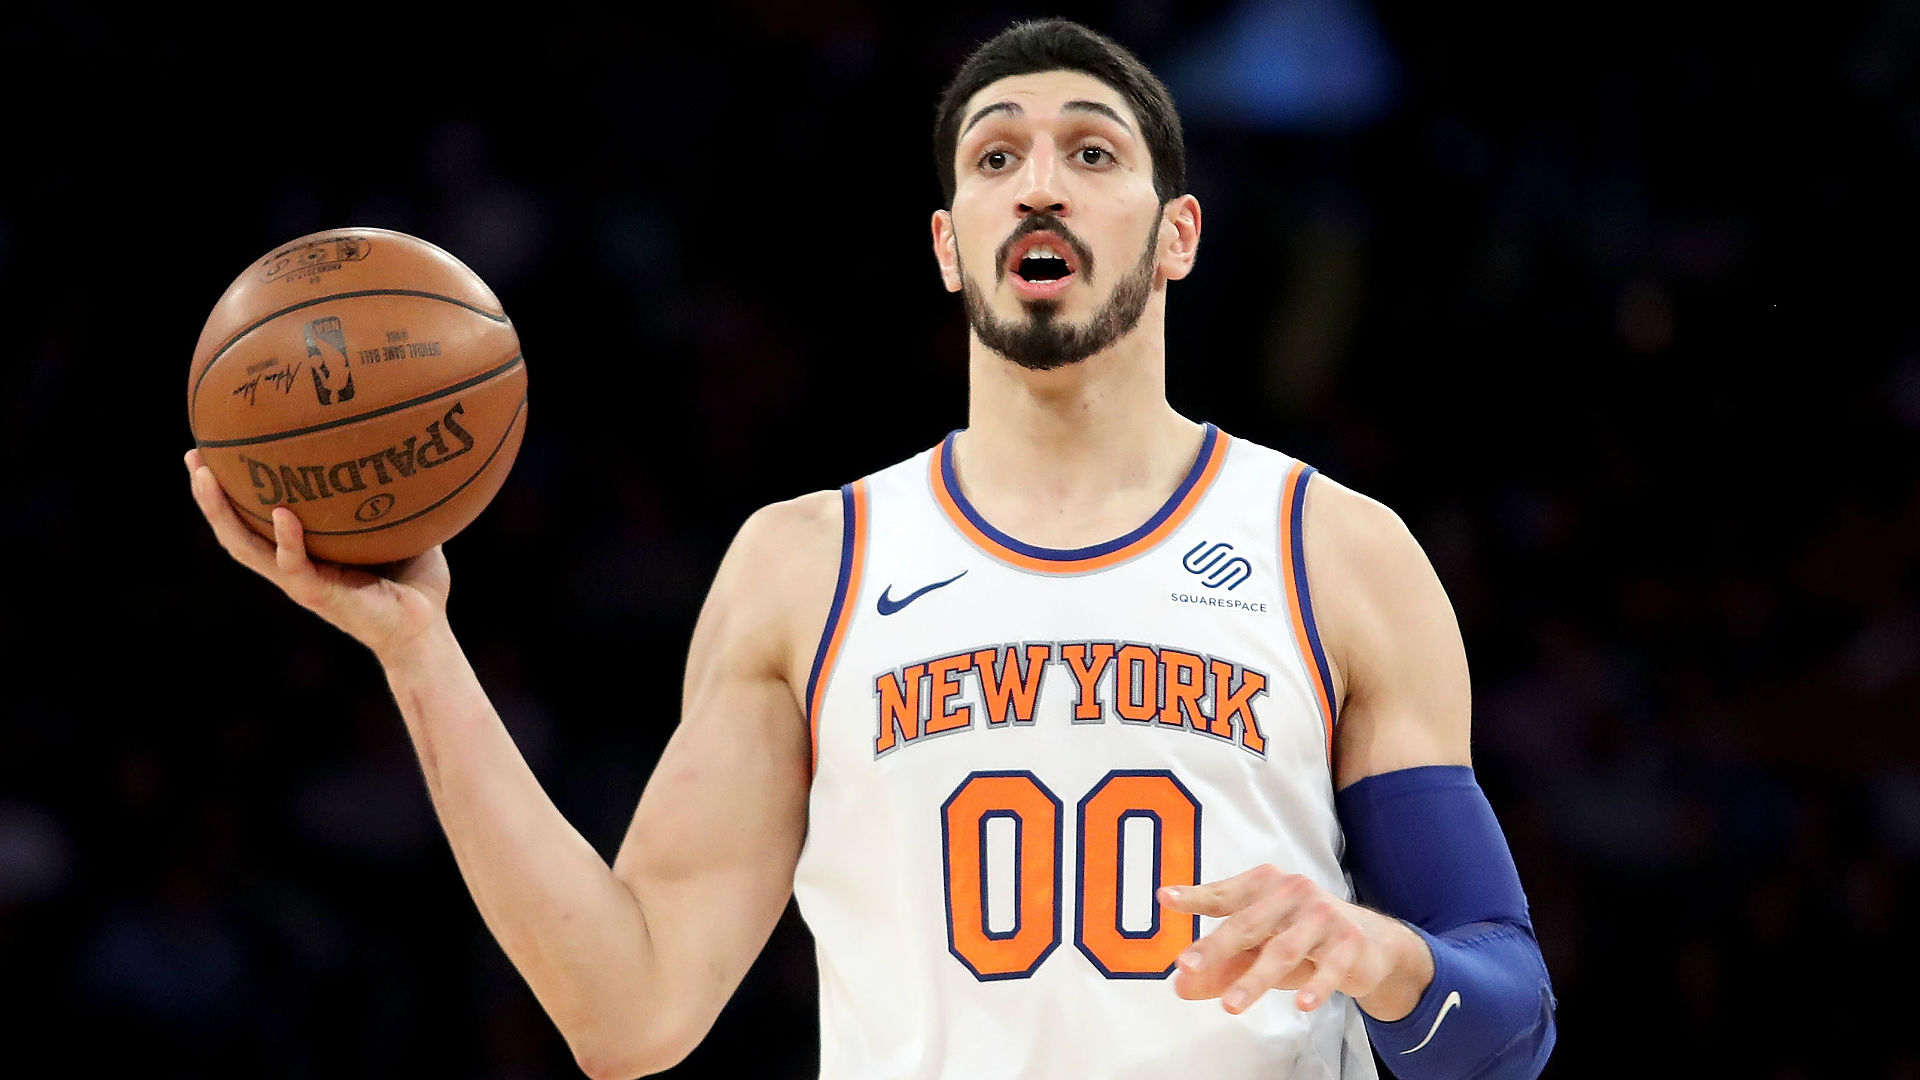 Thunder C Steven Adams reportedly tells Knicks coach to sub out Enes Kanter: 'He can't play defense'